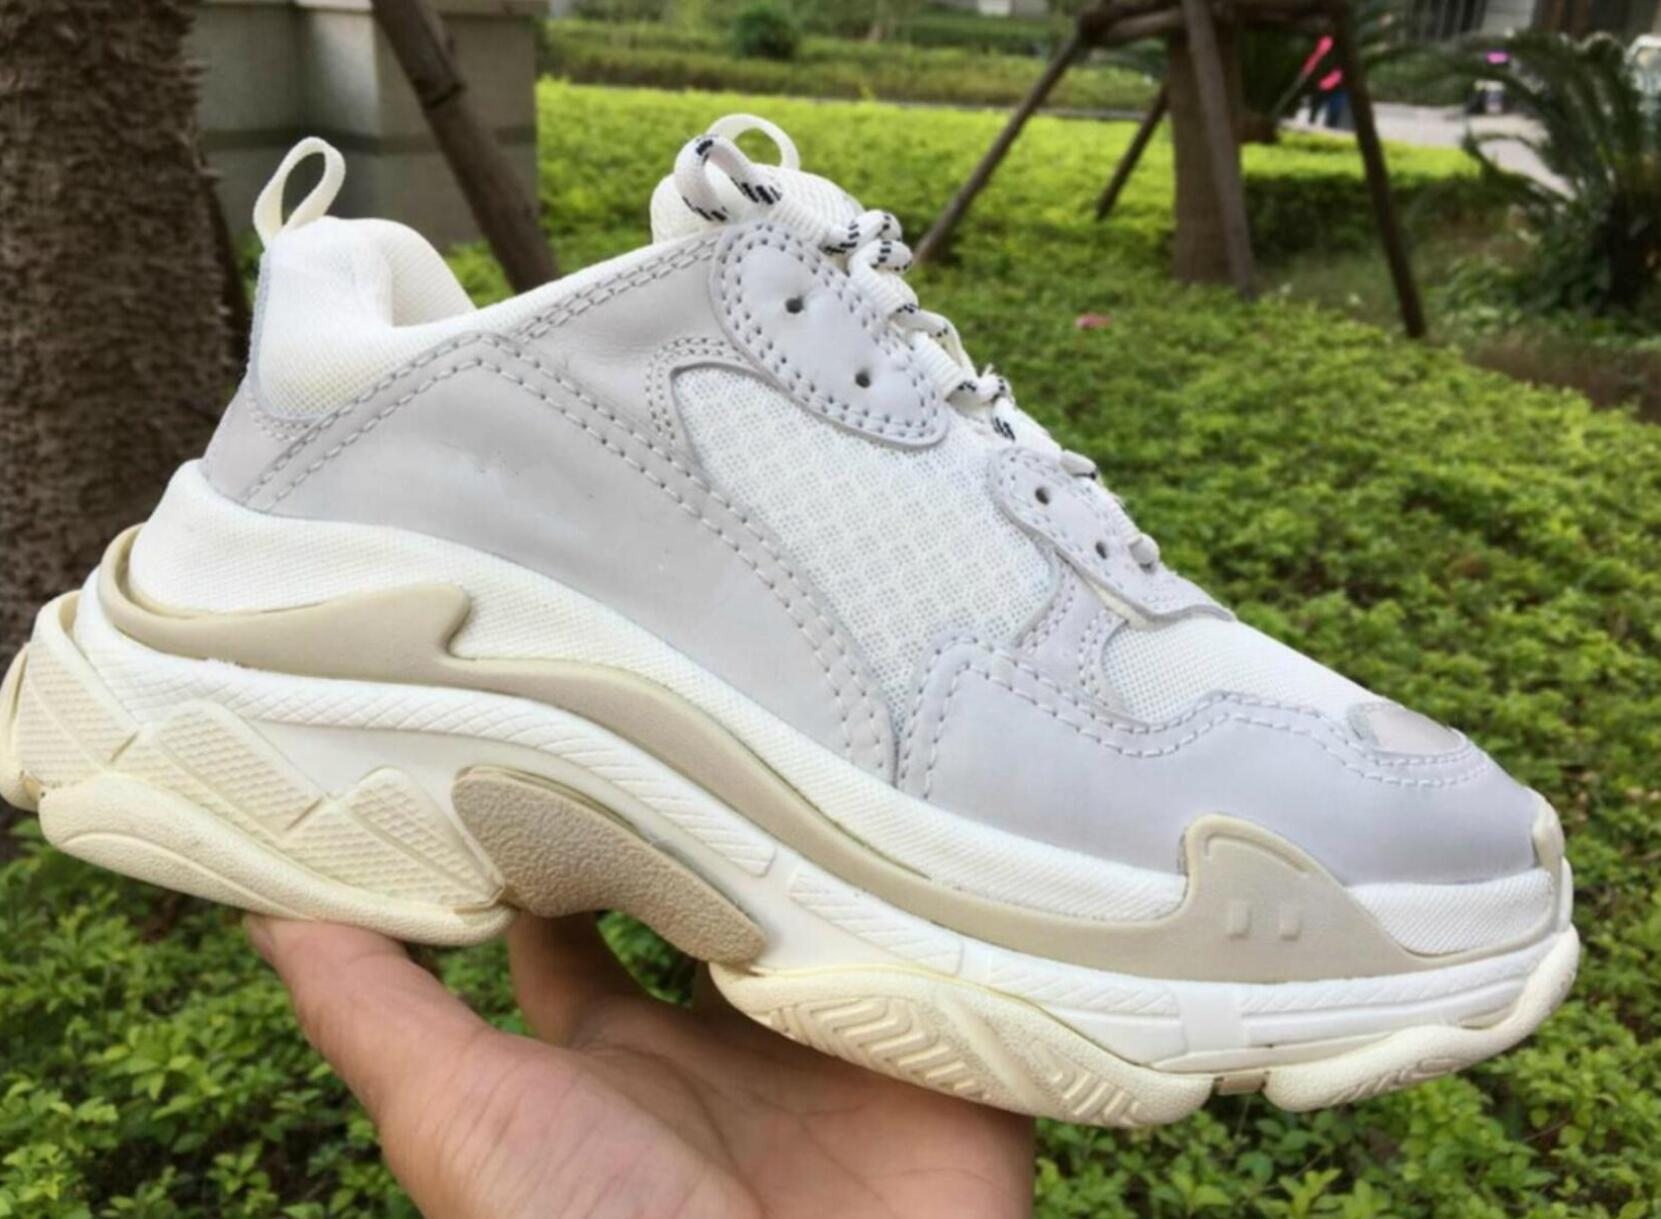 2019 NEW Designer Daddy comTriple S womens umps munro Triple-S Designer cute Women fashion casual shoes Old Dad shoes track shoes size 35-45